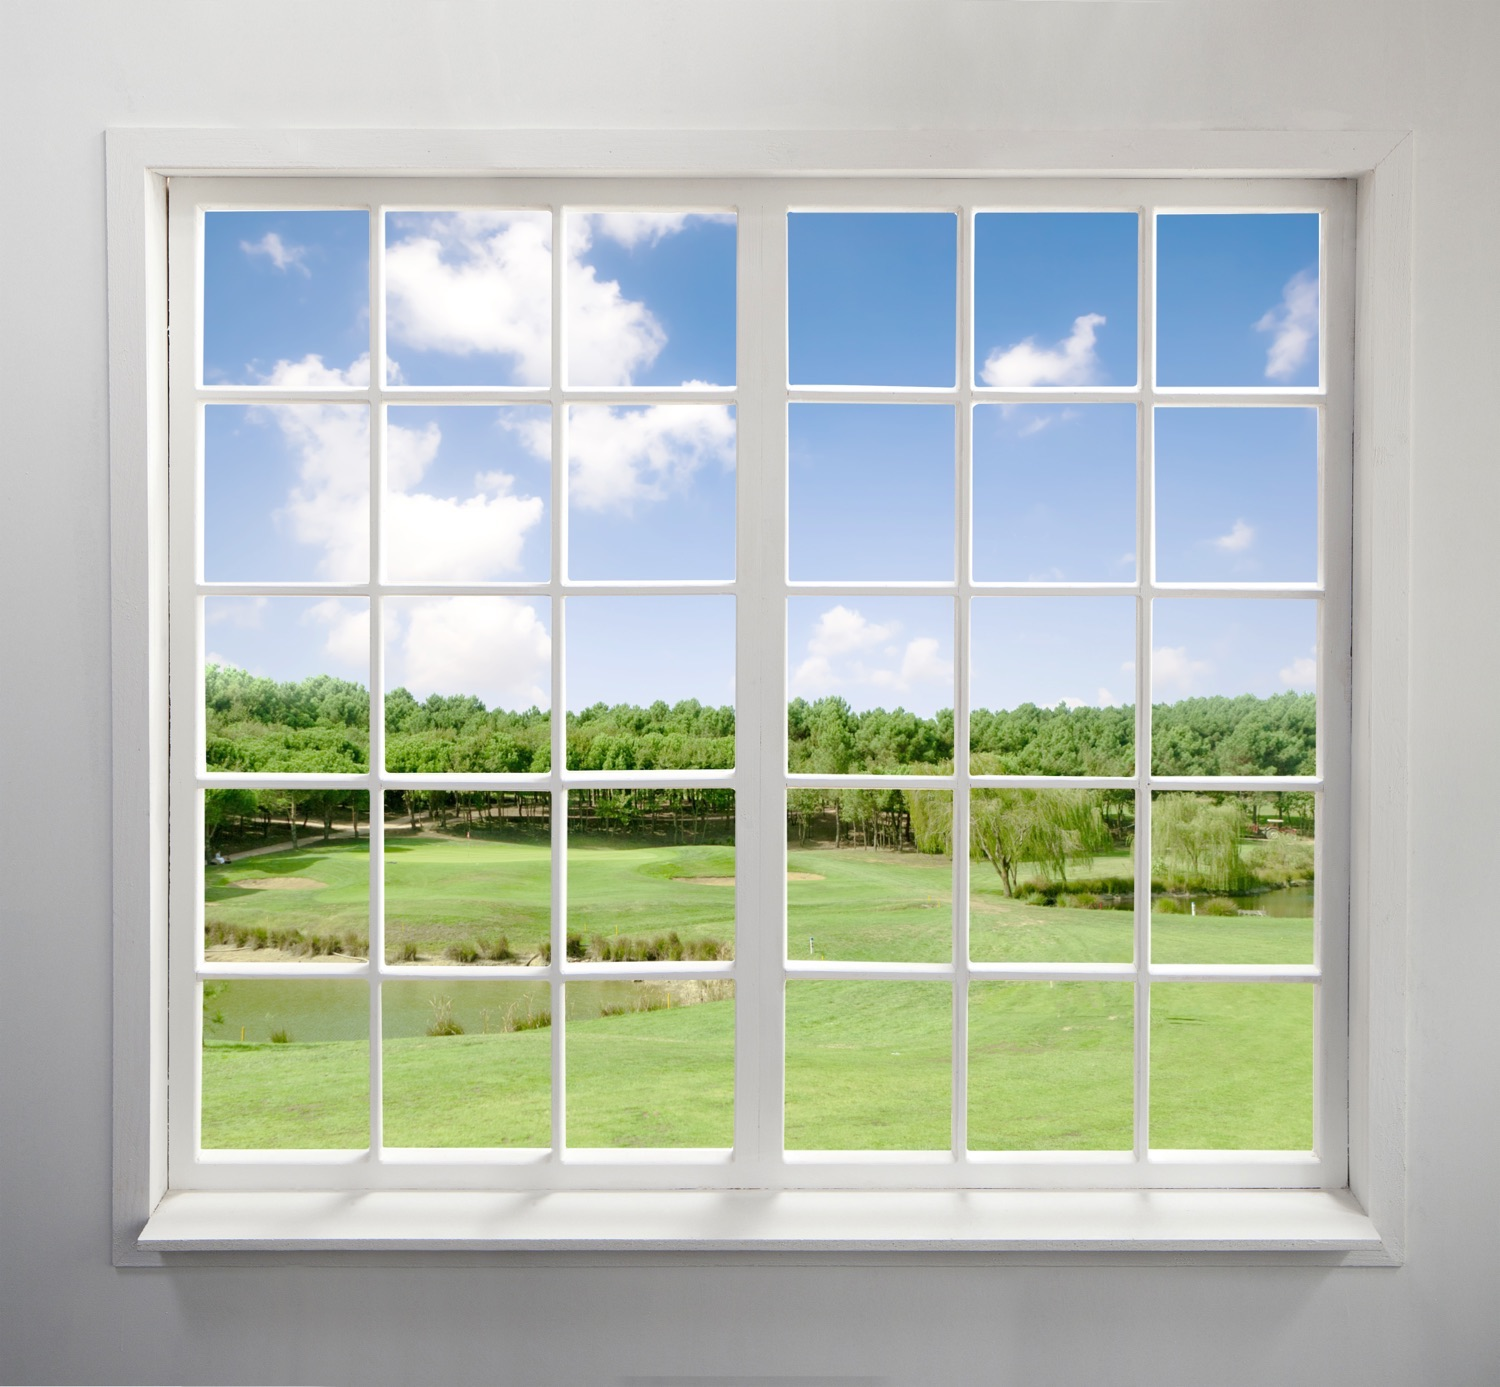 Single pane vs double pane windows xowindows for Windows windows windows